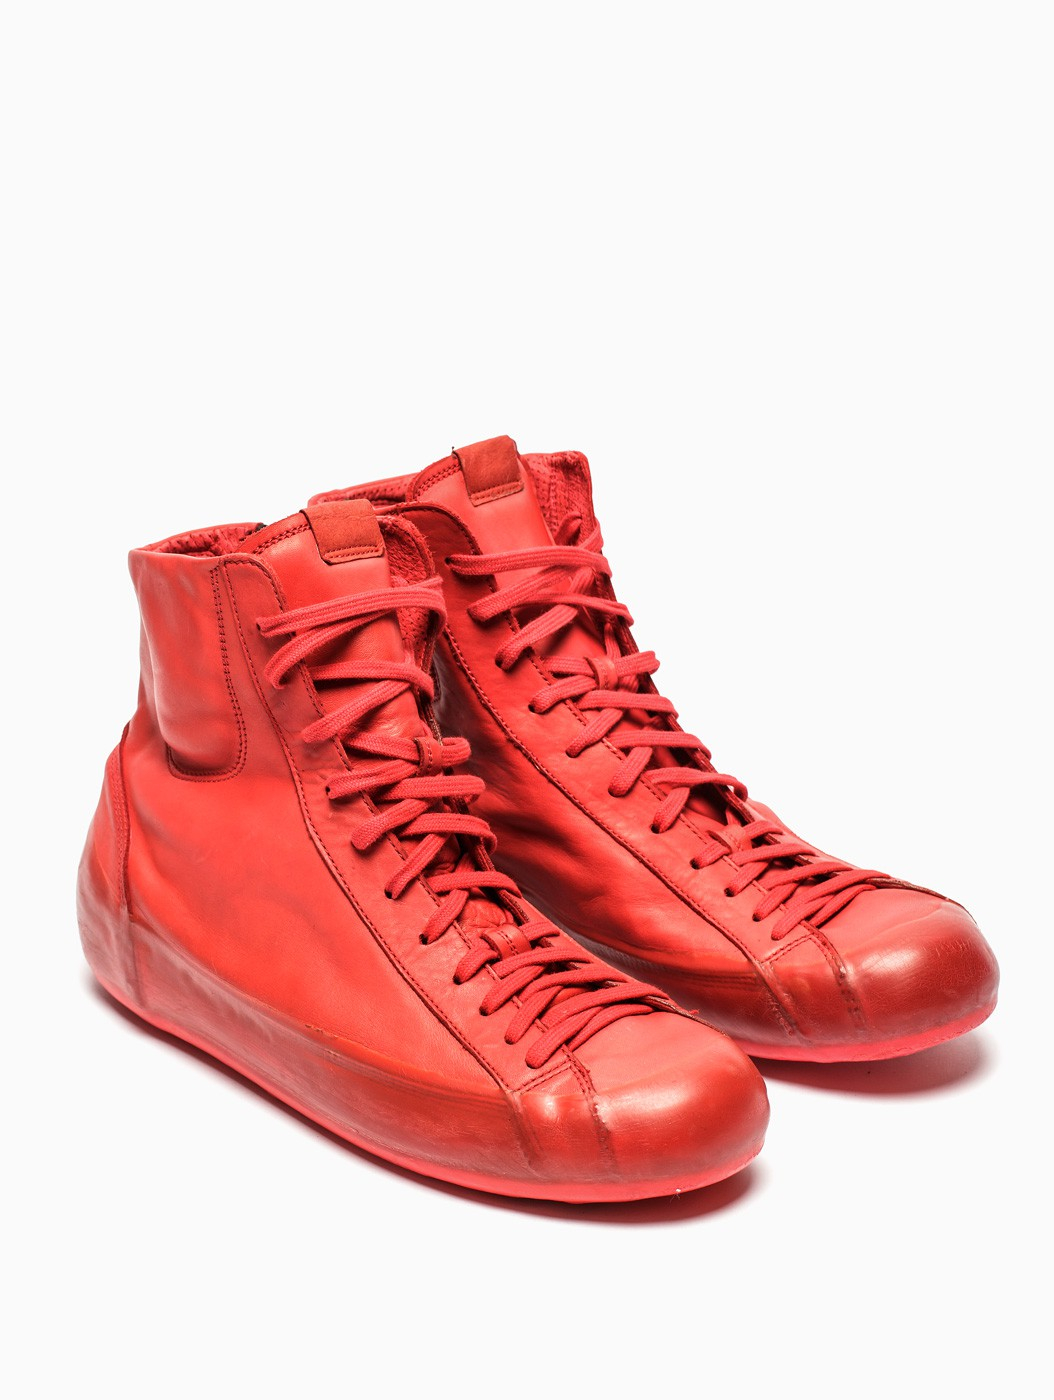 Lyst Oxs Rubber Soul Leather Sneakers In Red For Men